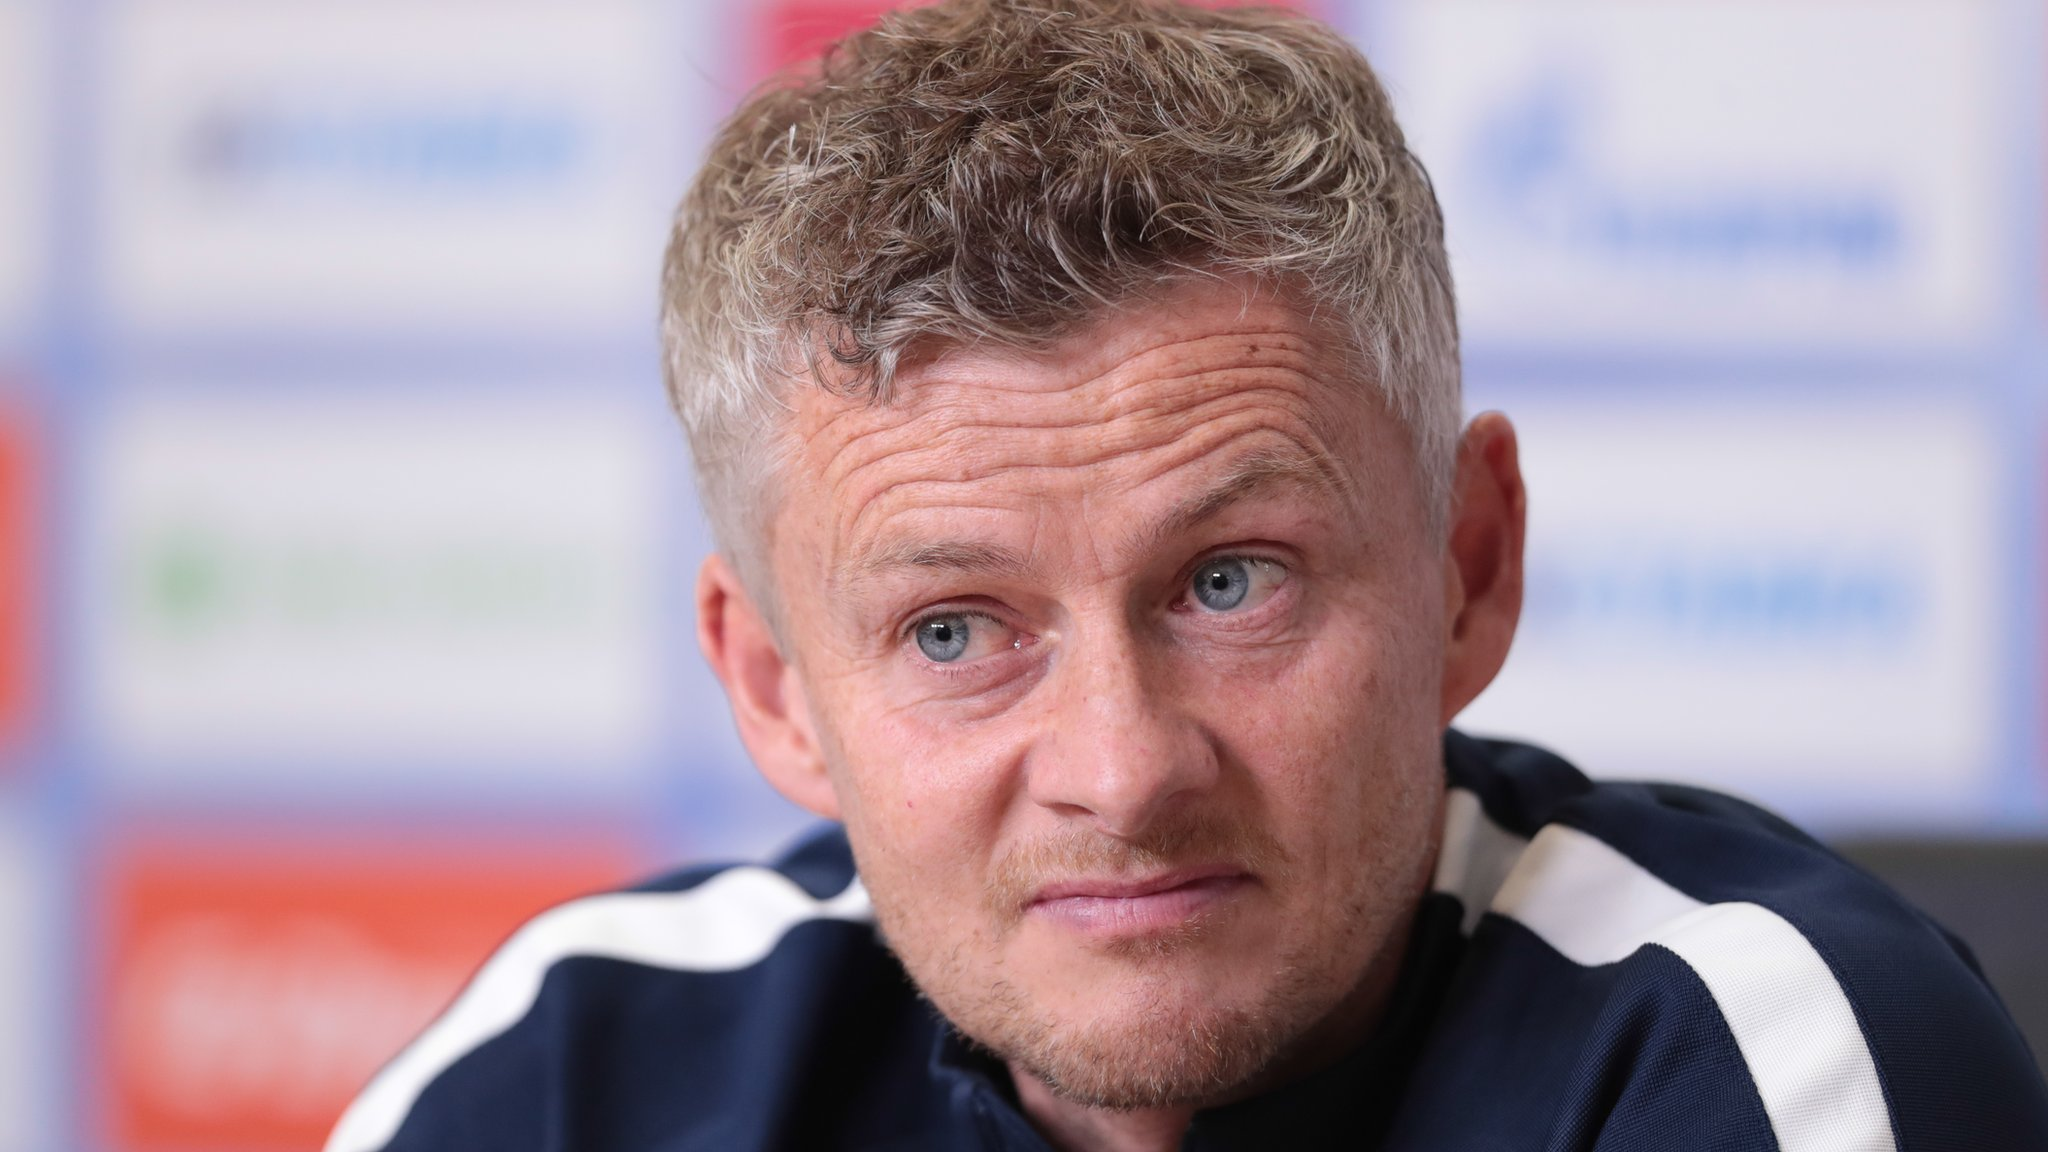 Have Man Utd confirmed Solskjaer as interim manager by mistake?